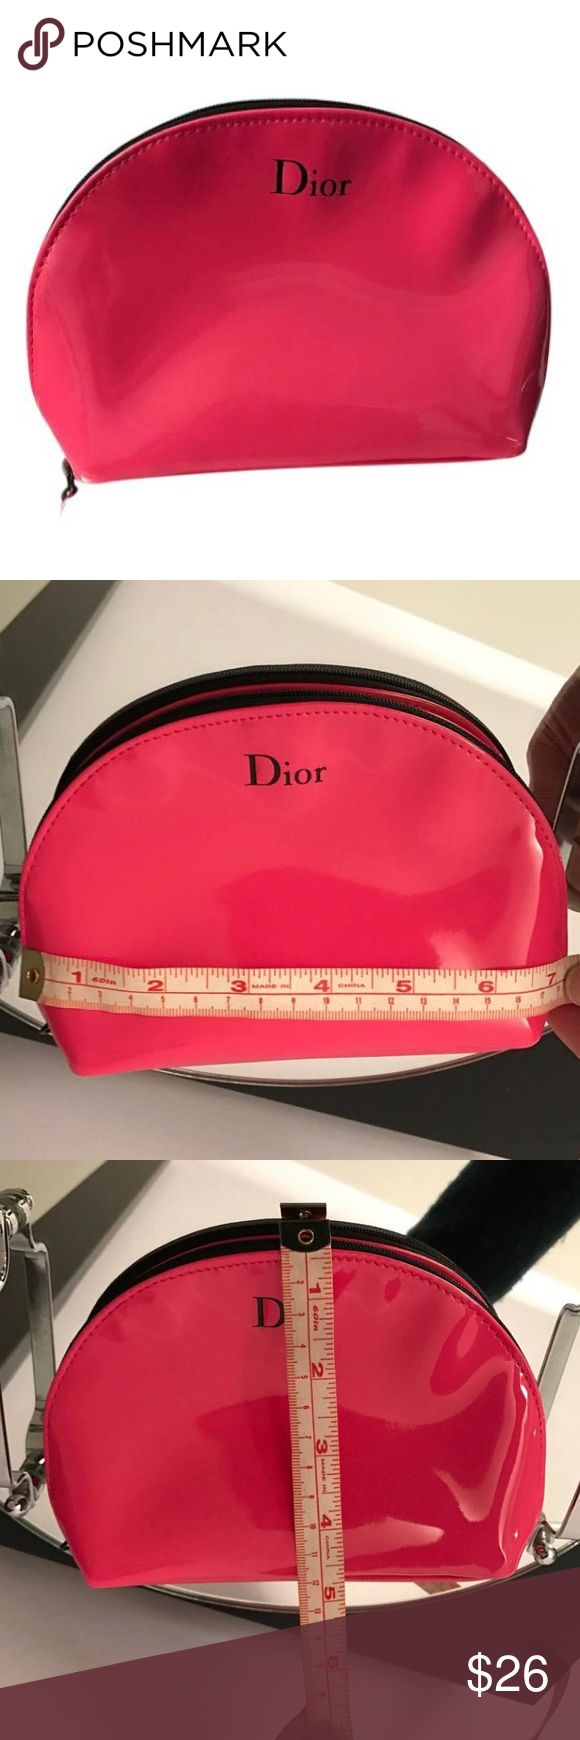 NEW PINK DIOR MAKEUP BAG Brand new! Super cute DIOR makeup bag. Came with purchase of Dior Makeup from Nordstrom Dior Makeup